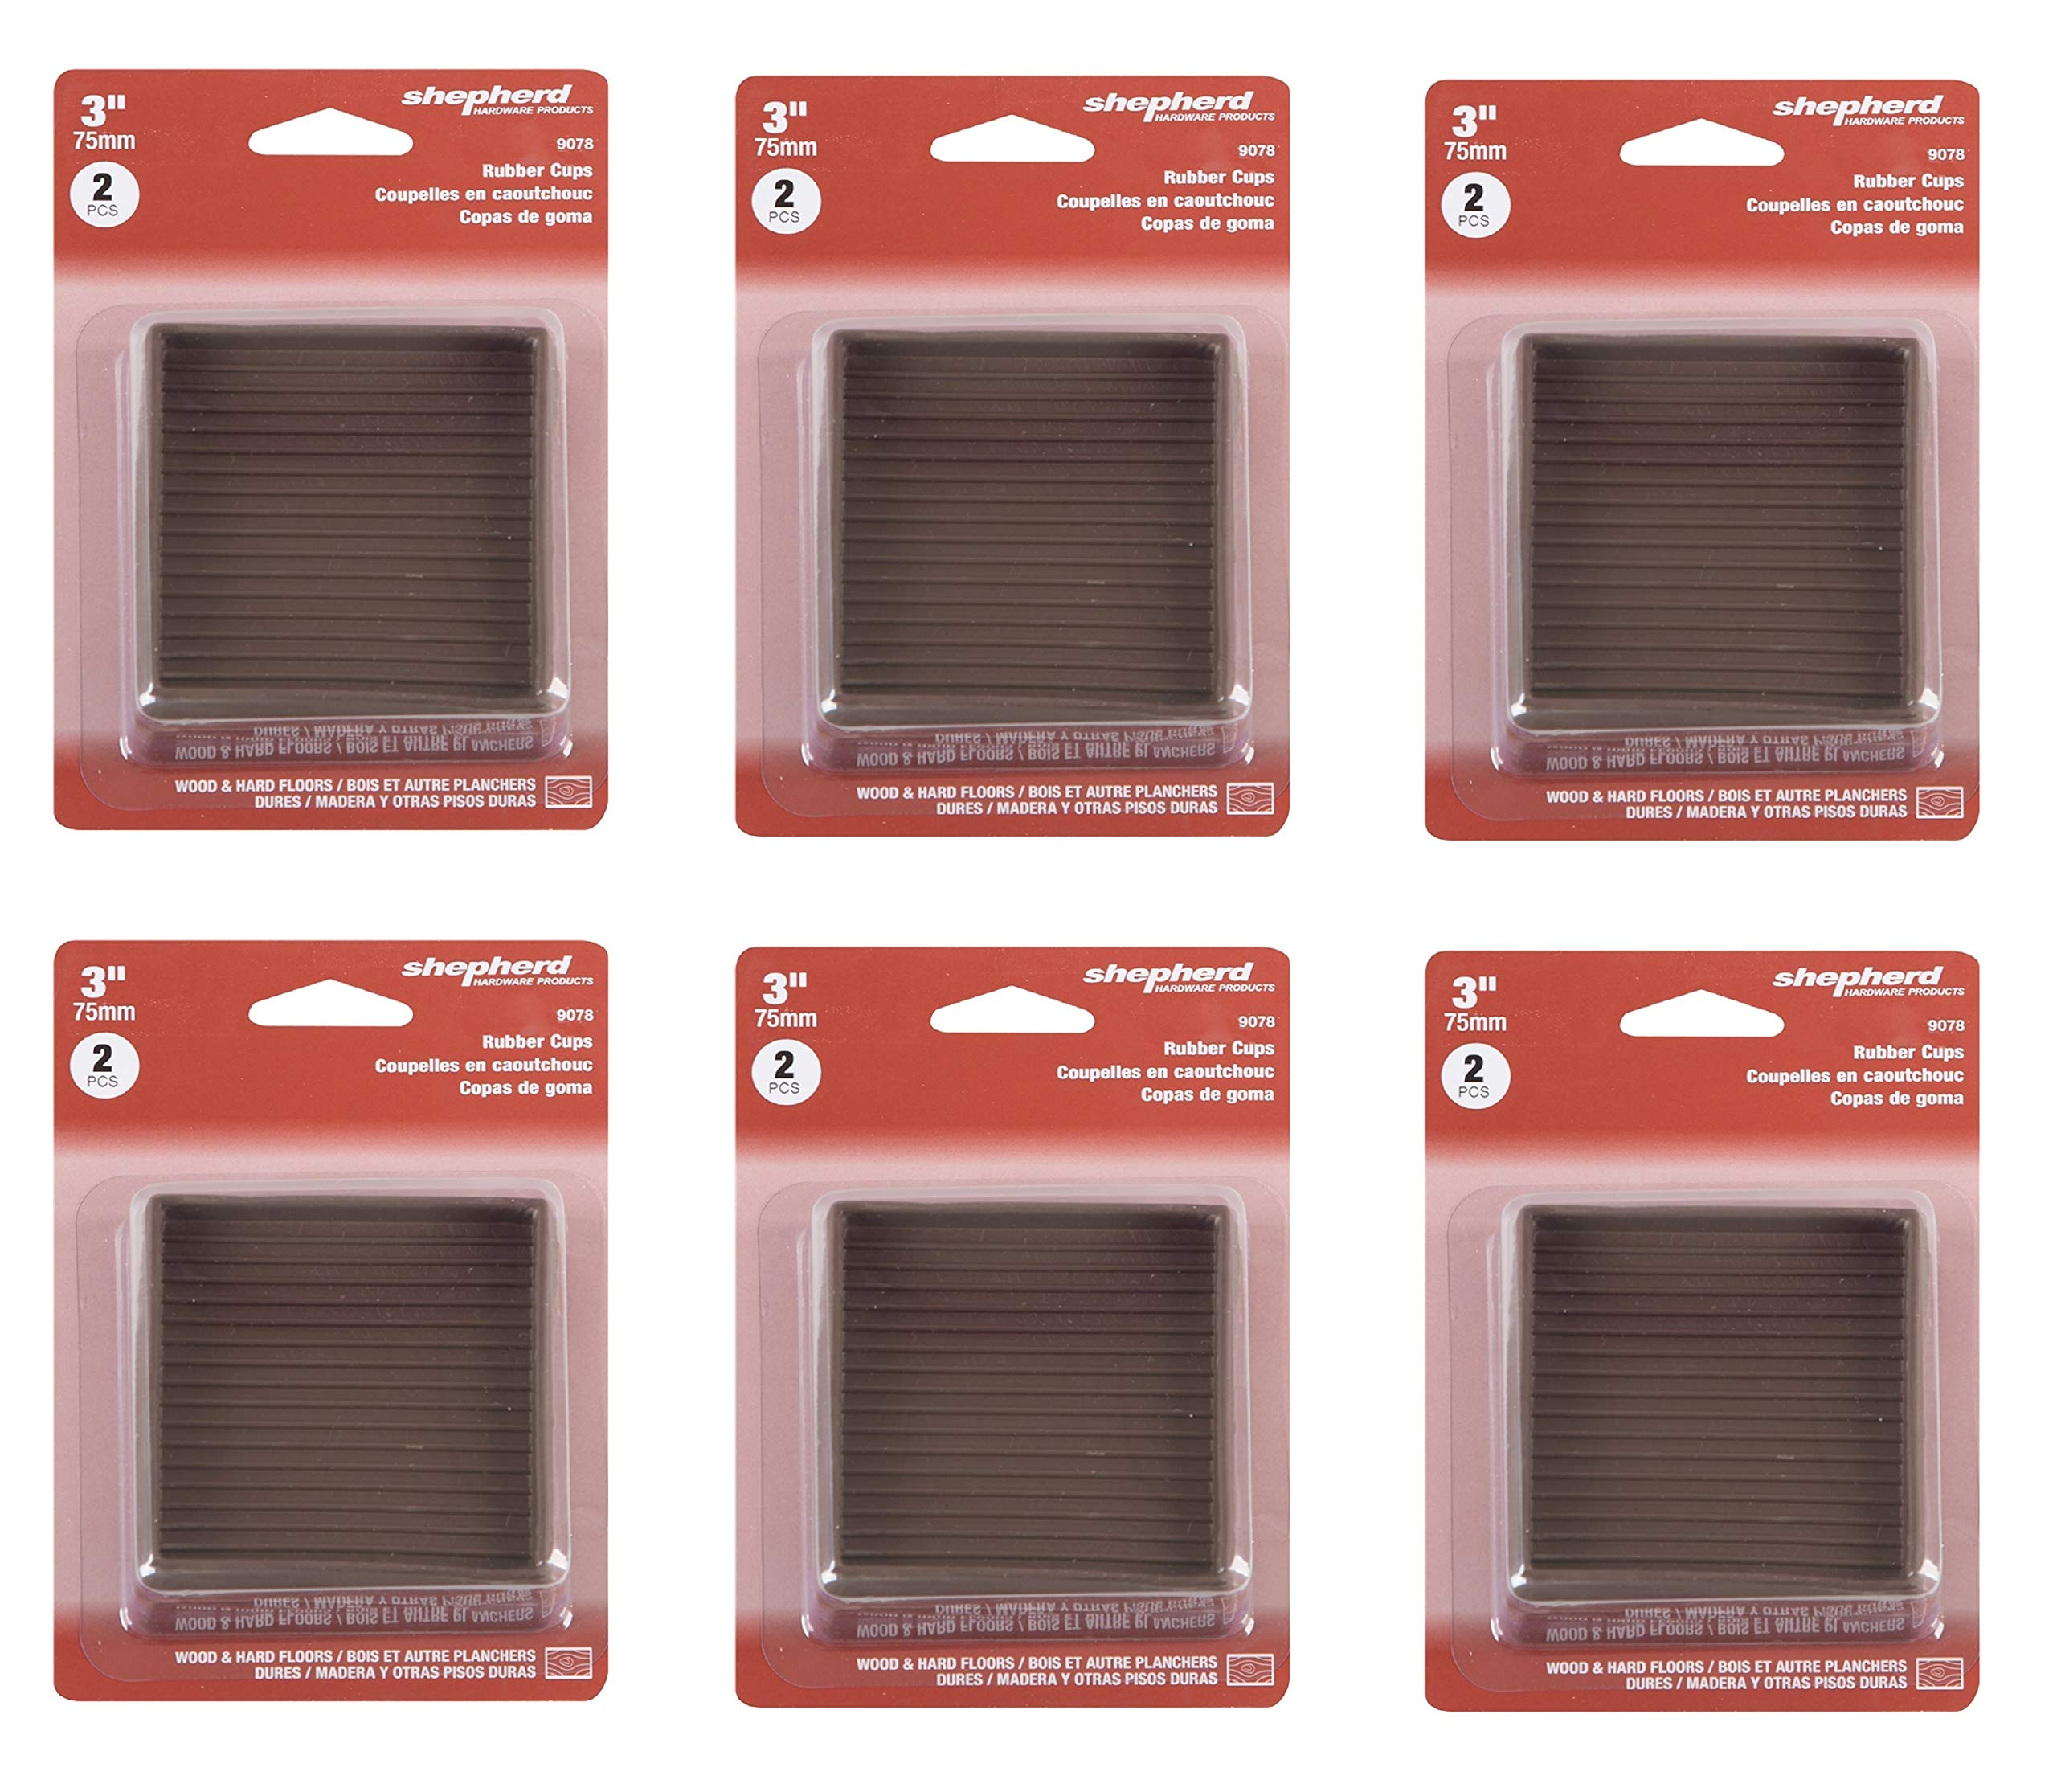 Shepherd Caster Cup 3''x3''Brown Rubber, Sold as 6 Pack, 12 Count Total